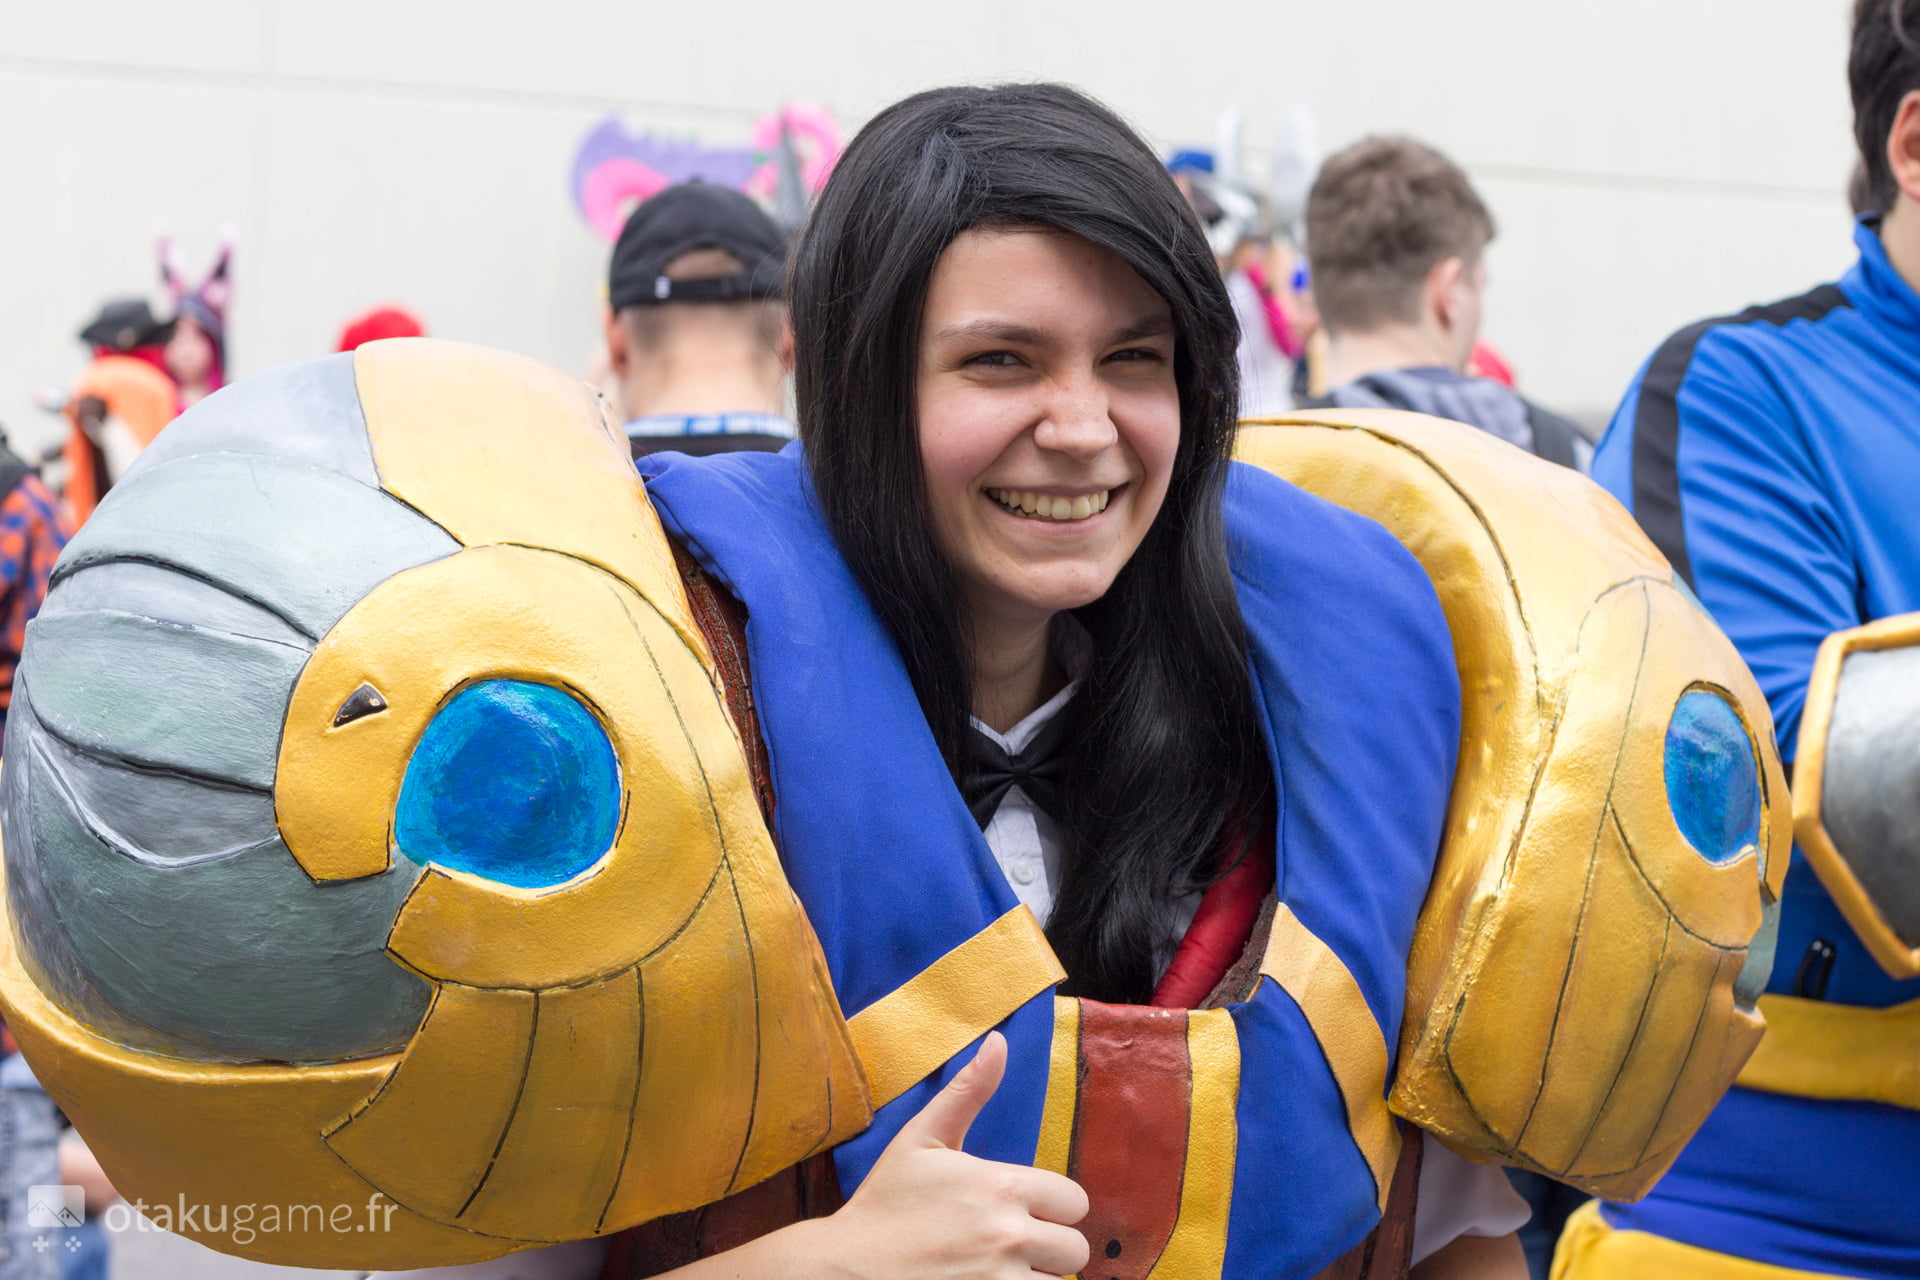 Gamescom 2017 - Cosplay - 3434